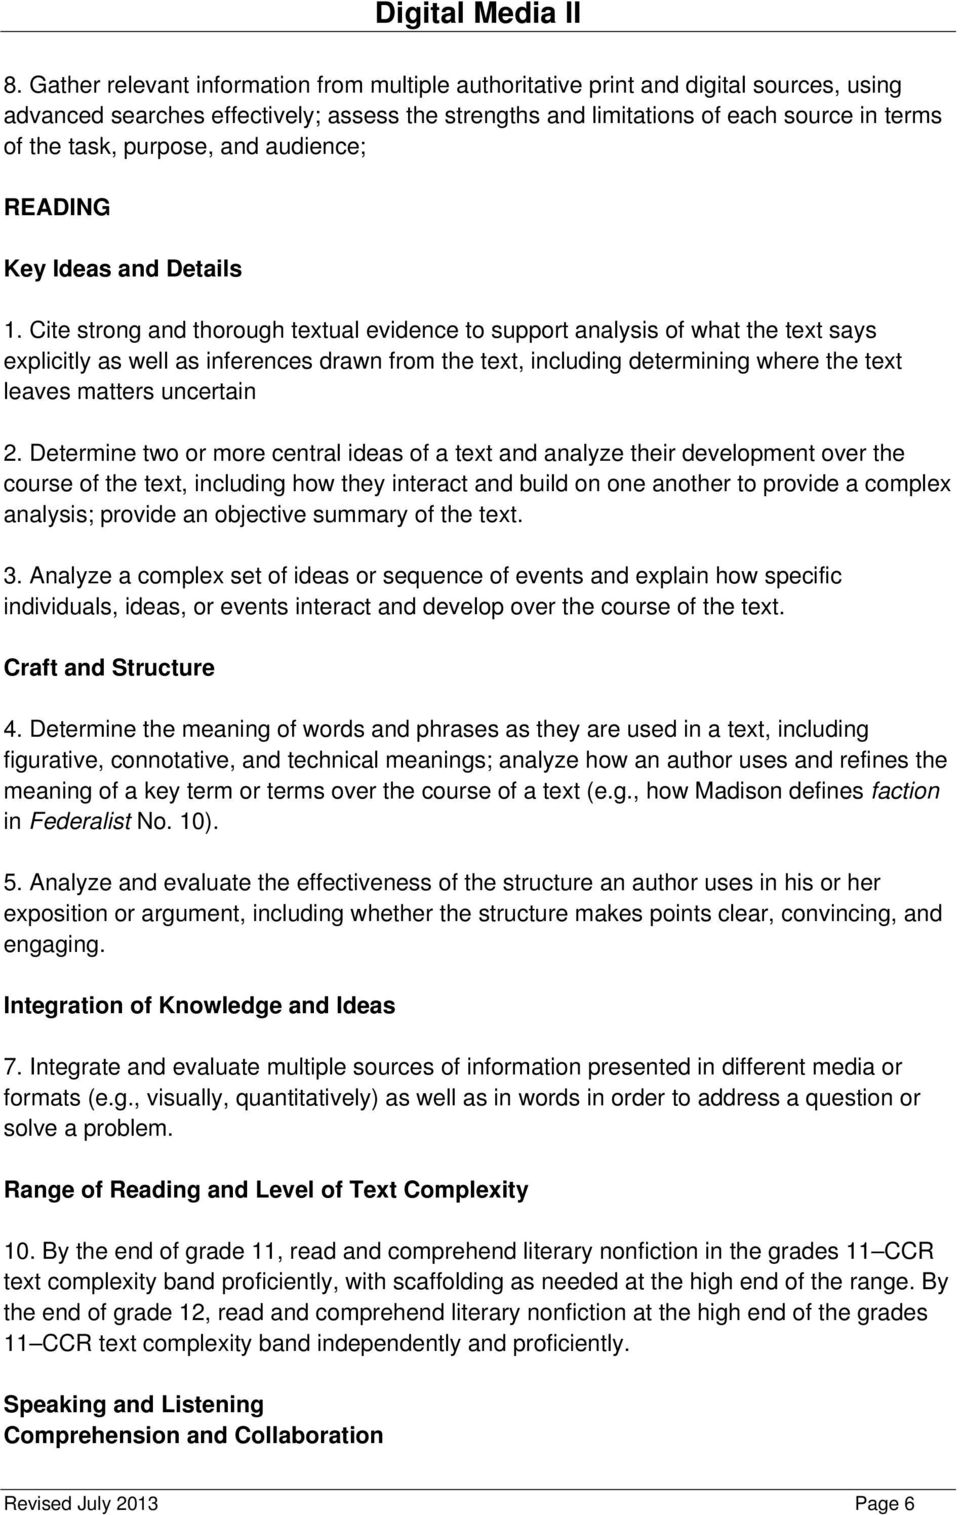 Cite strong and thorough textual evidence to support analysis of what the text says explicitly as well as inferences drawn from the text, including determining where the text leaves matters uncertain